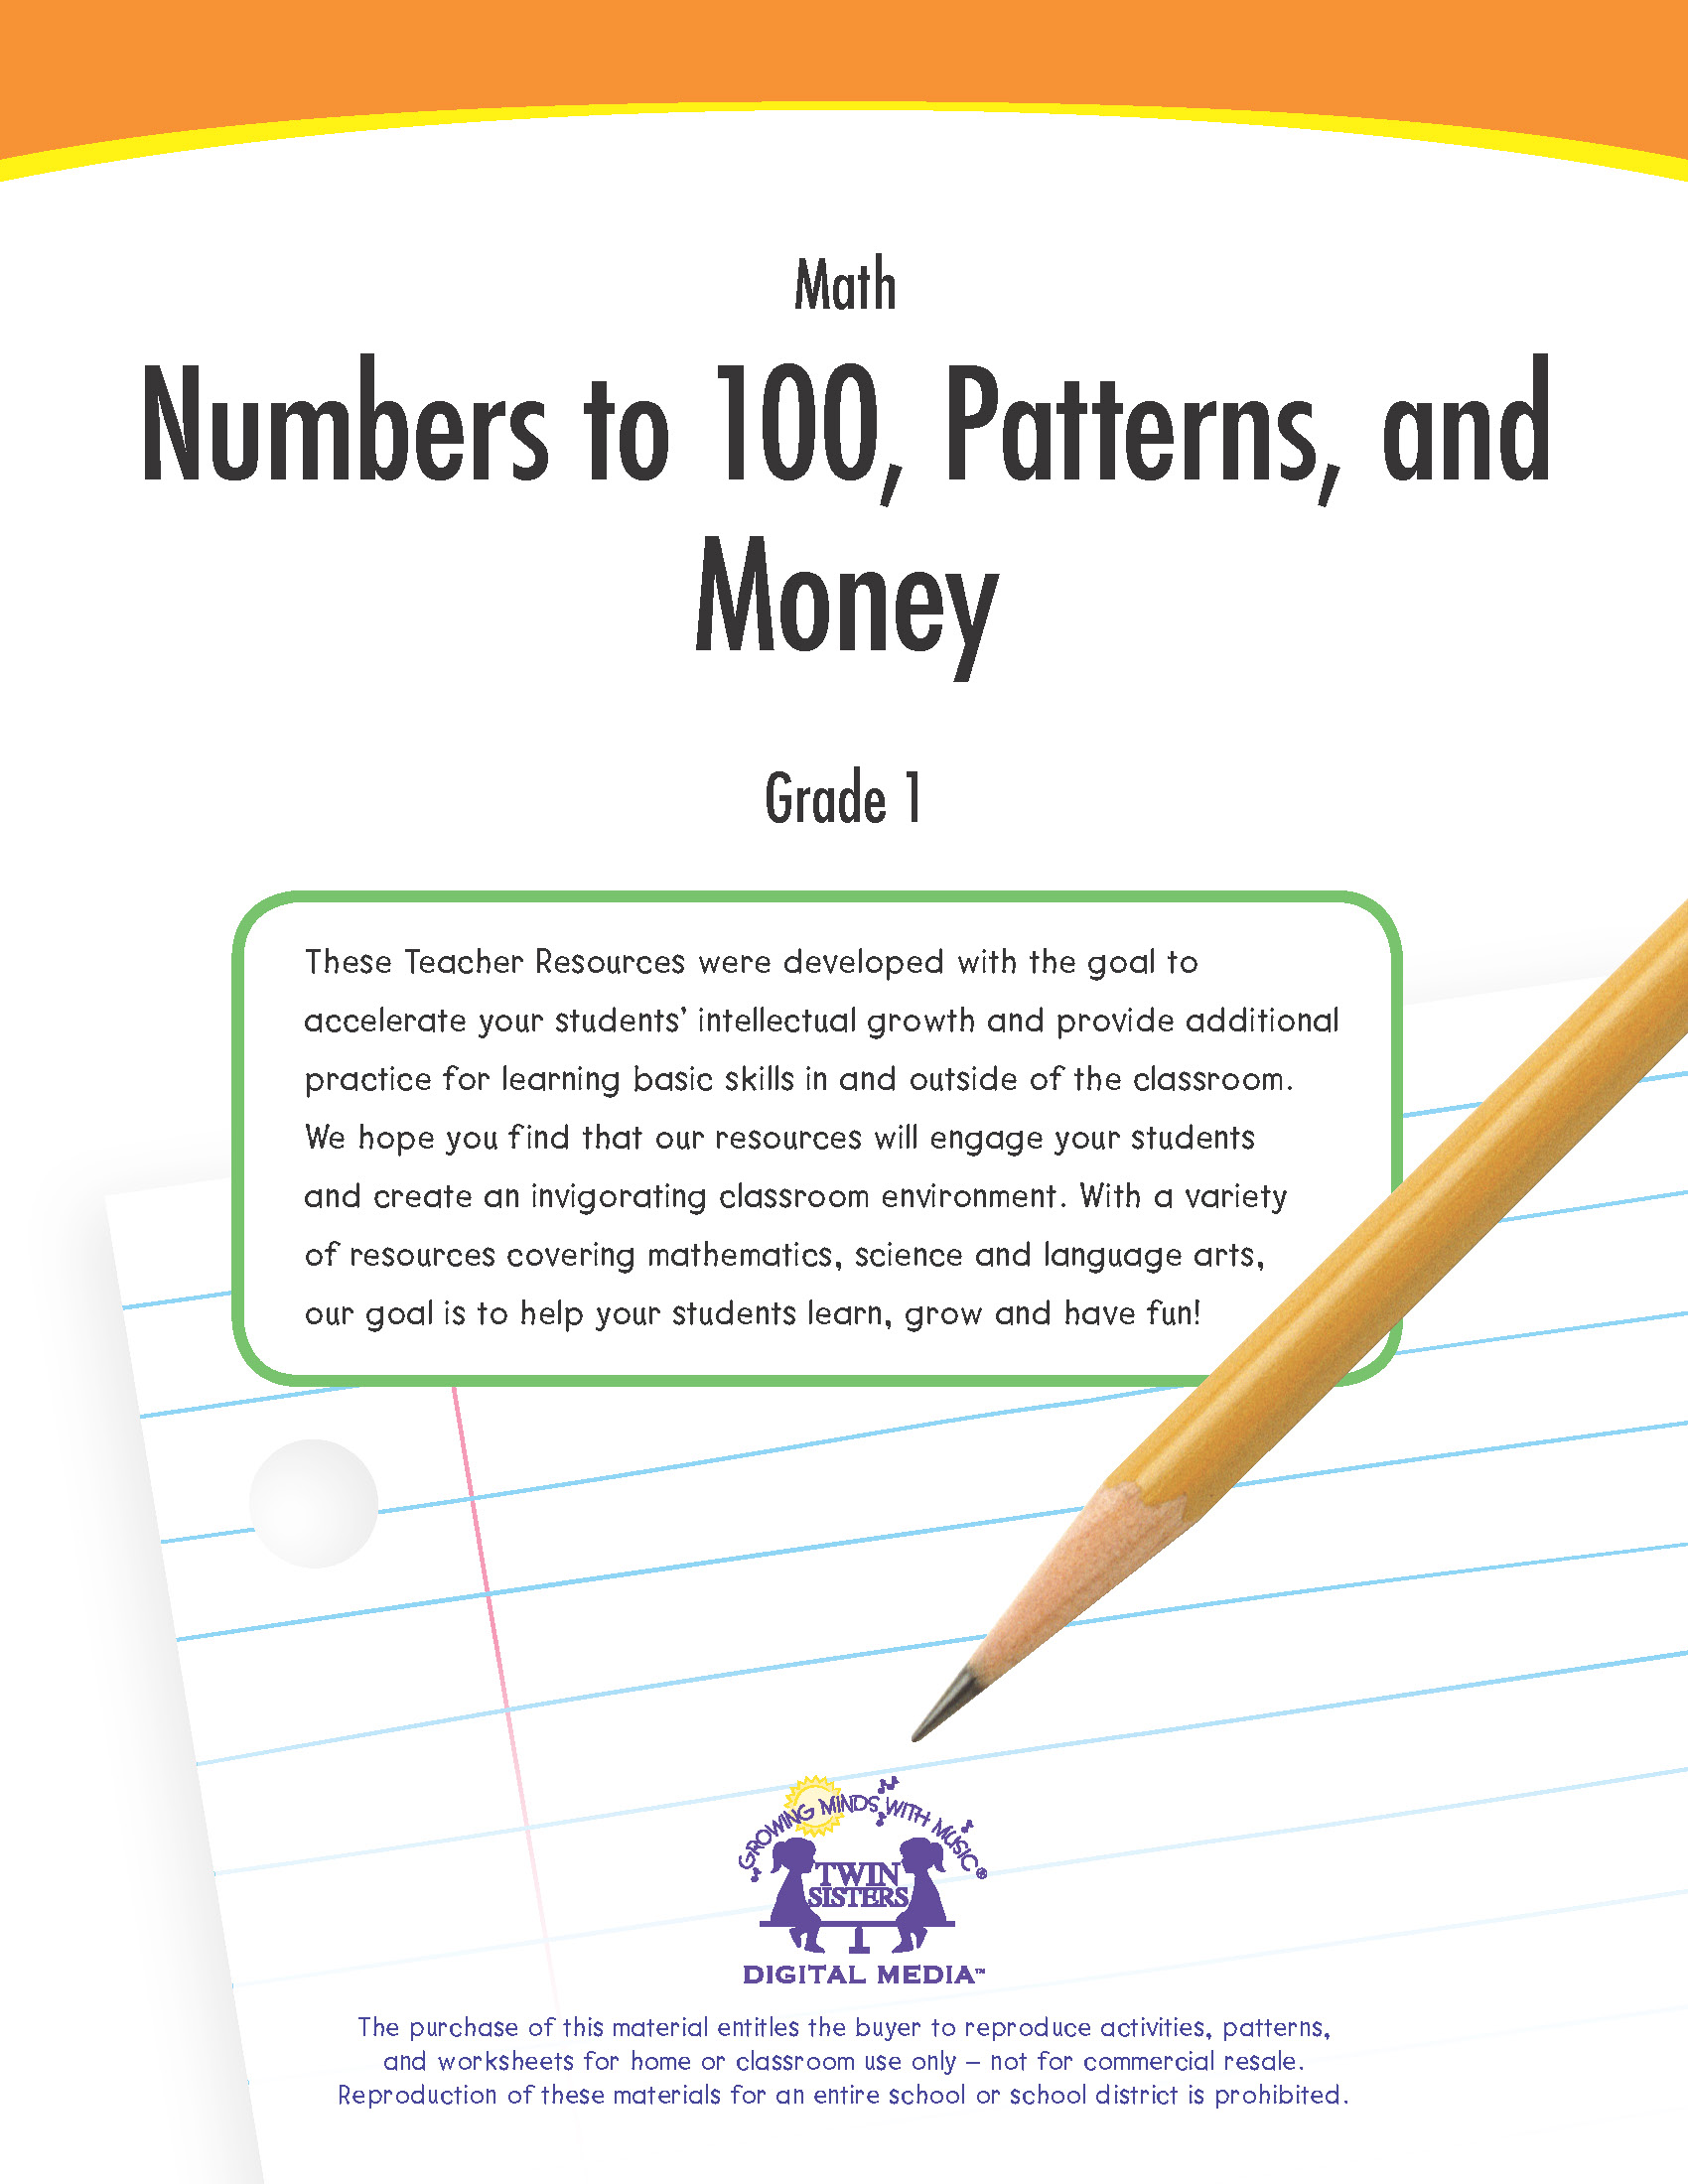 Math Grade 1 Numbers To 100 Patterns And Money